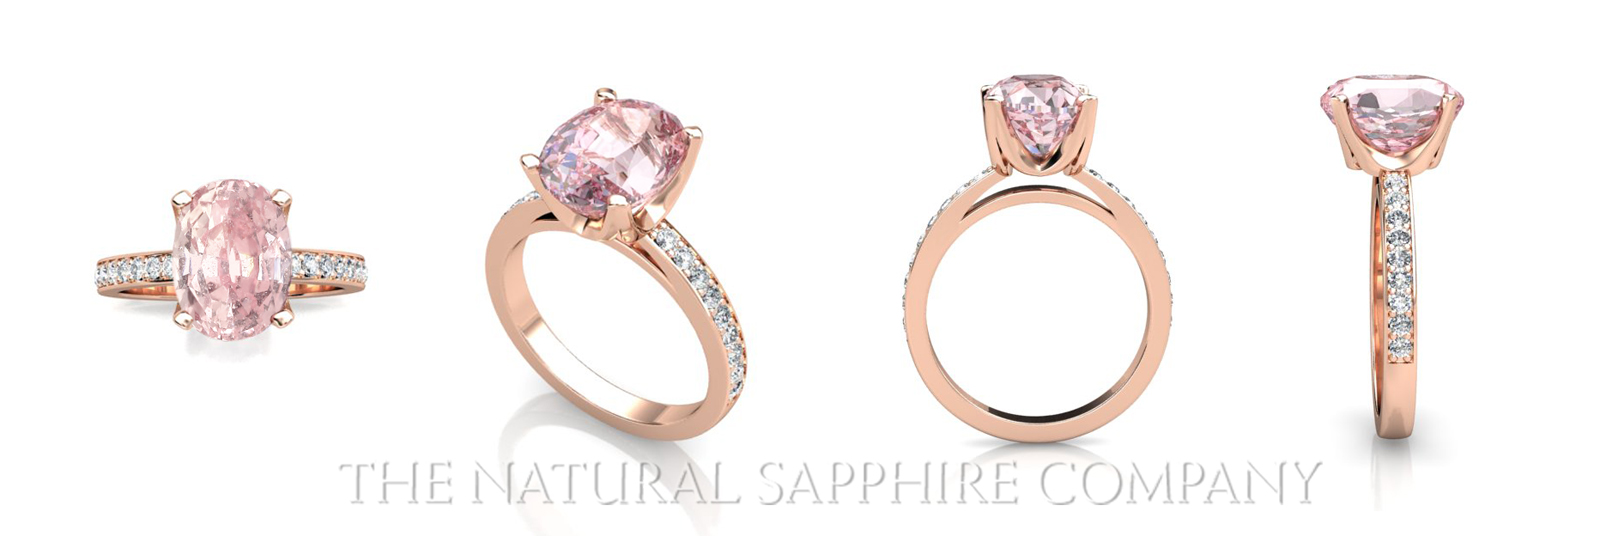 from magazine top blast rose in gold styles rings pink blog ring sapphire engagement